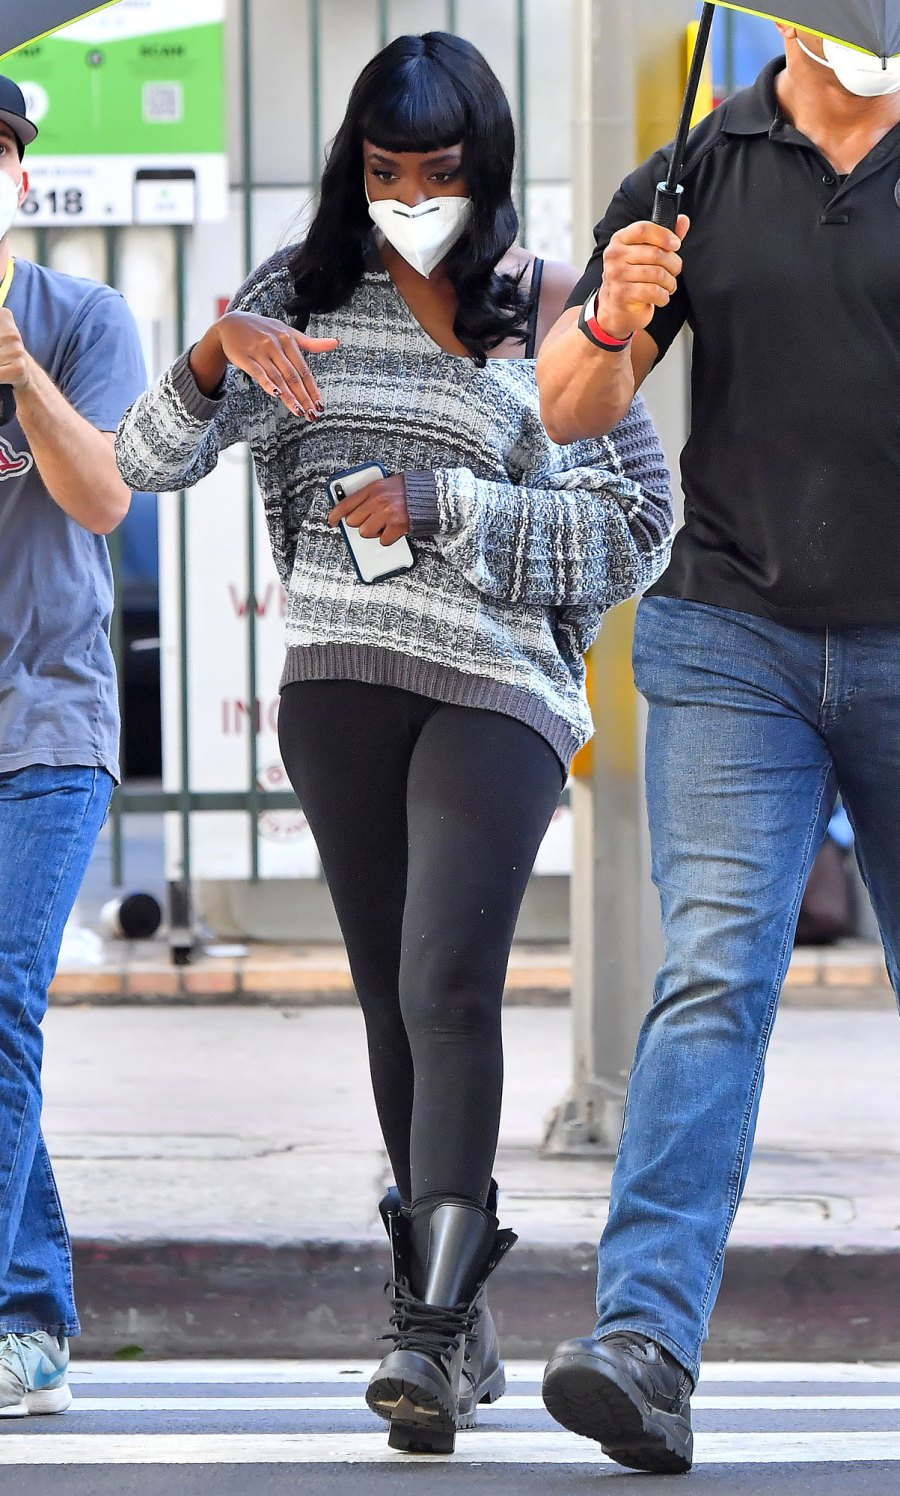 Harry Styles Movie Don't Worry Darling Halted Over Positive COVID-19 Test Kiki Layne